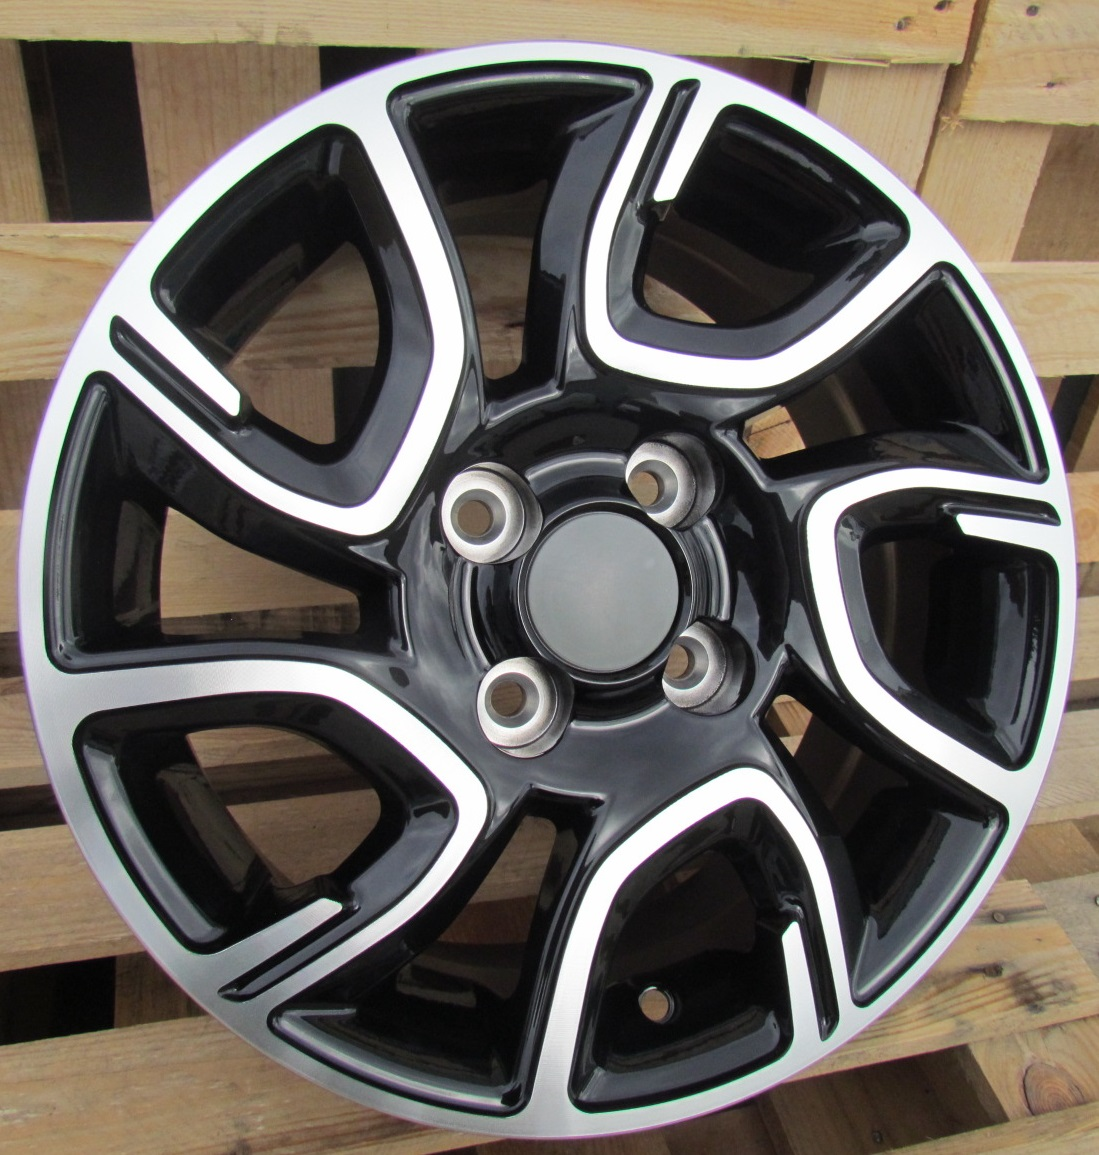 K14X6 4X100 ET35 54.1 XFE186 MB+Powder Coating RWR KI (+2eur) (R)## 6x14 ET36 4x100